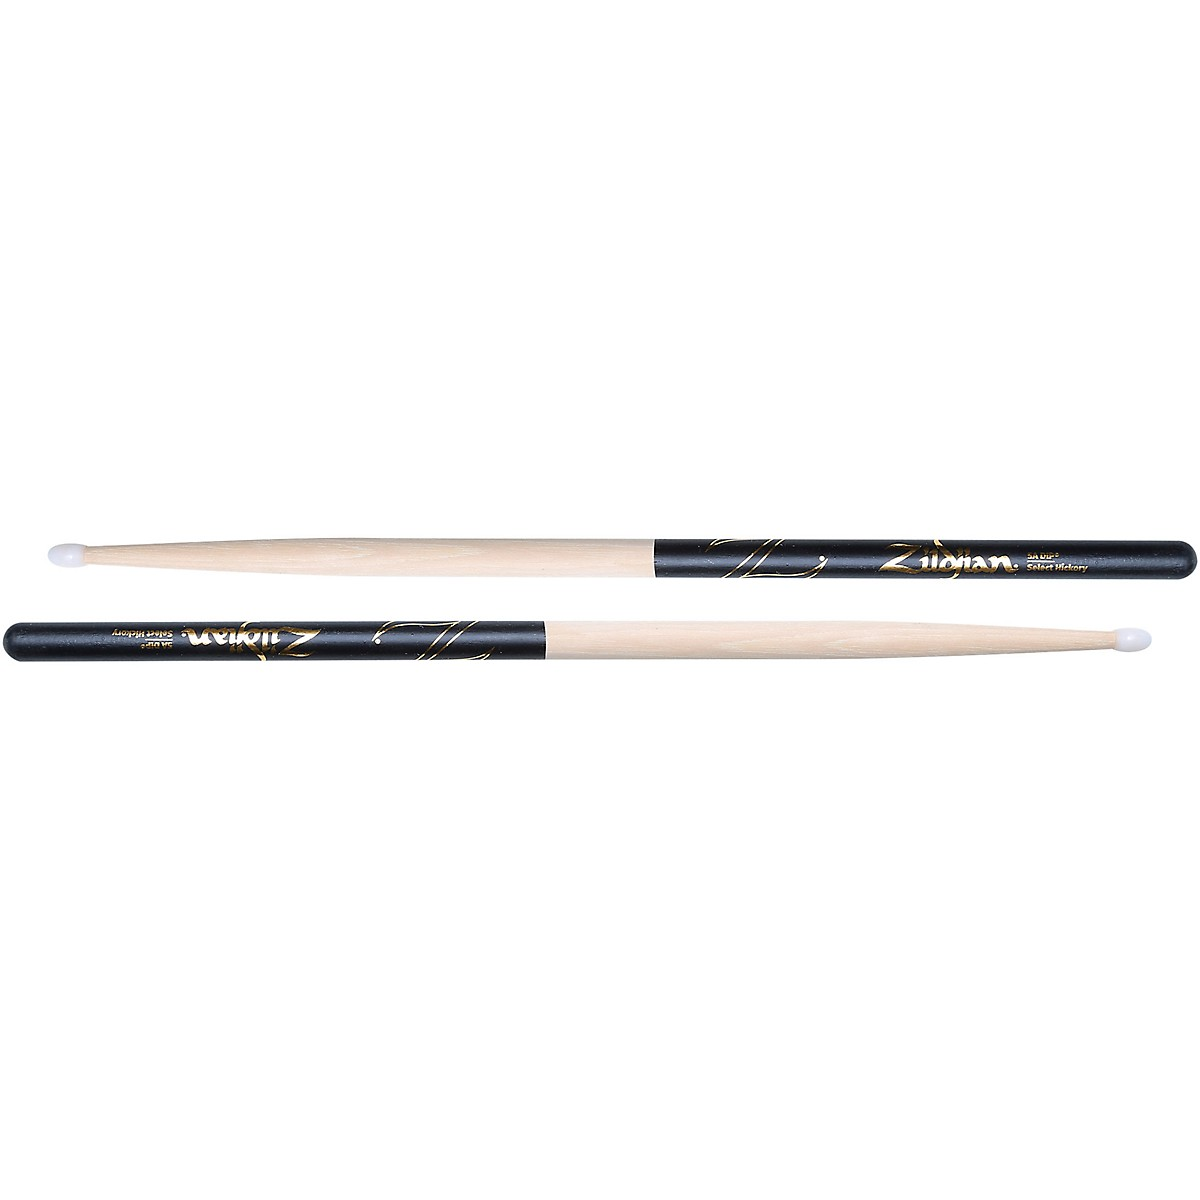 Zildjian Black DIP Drum Sticks